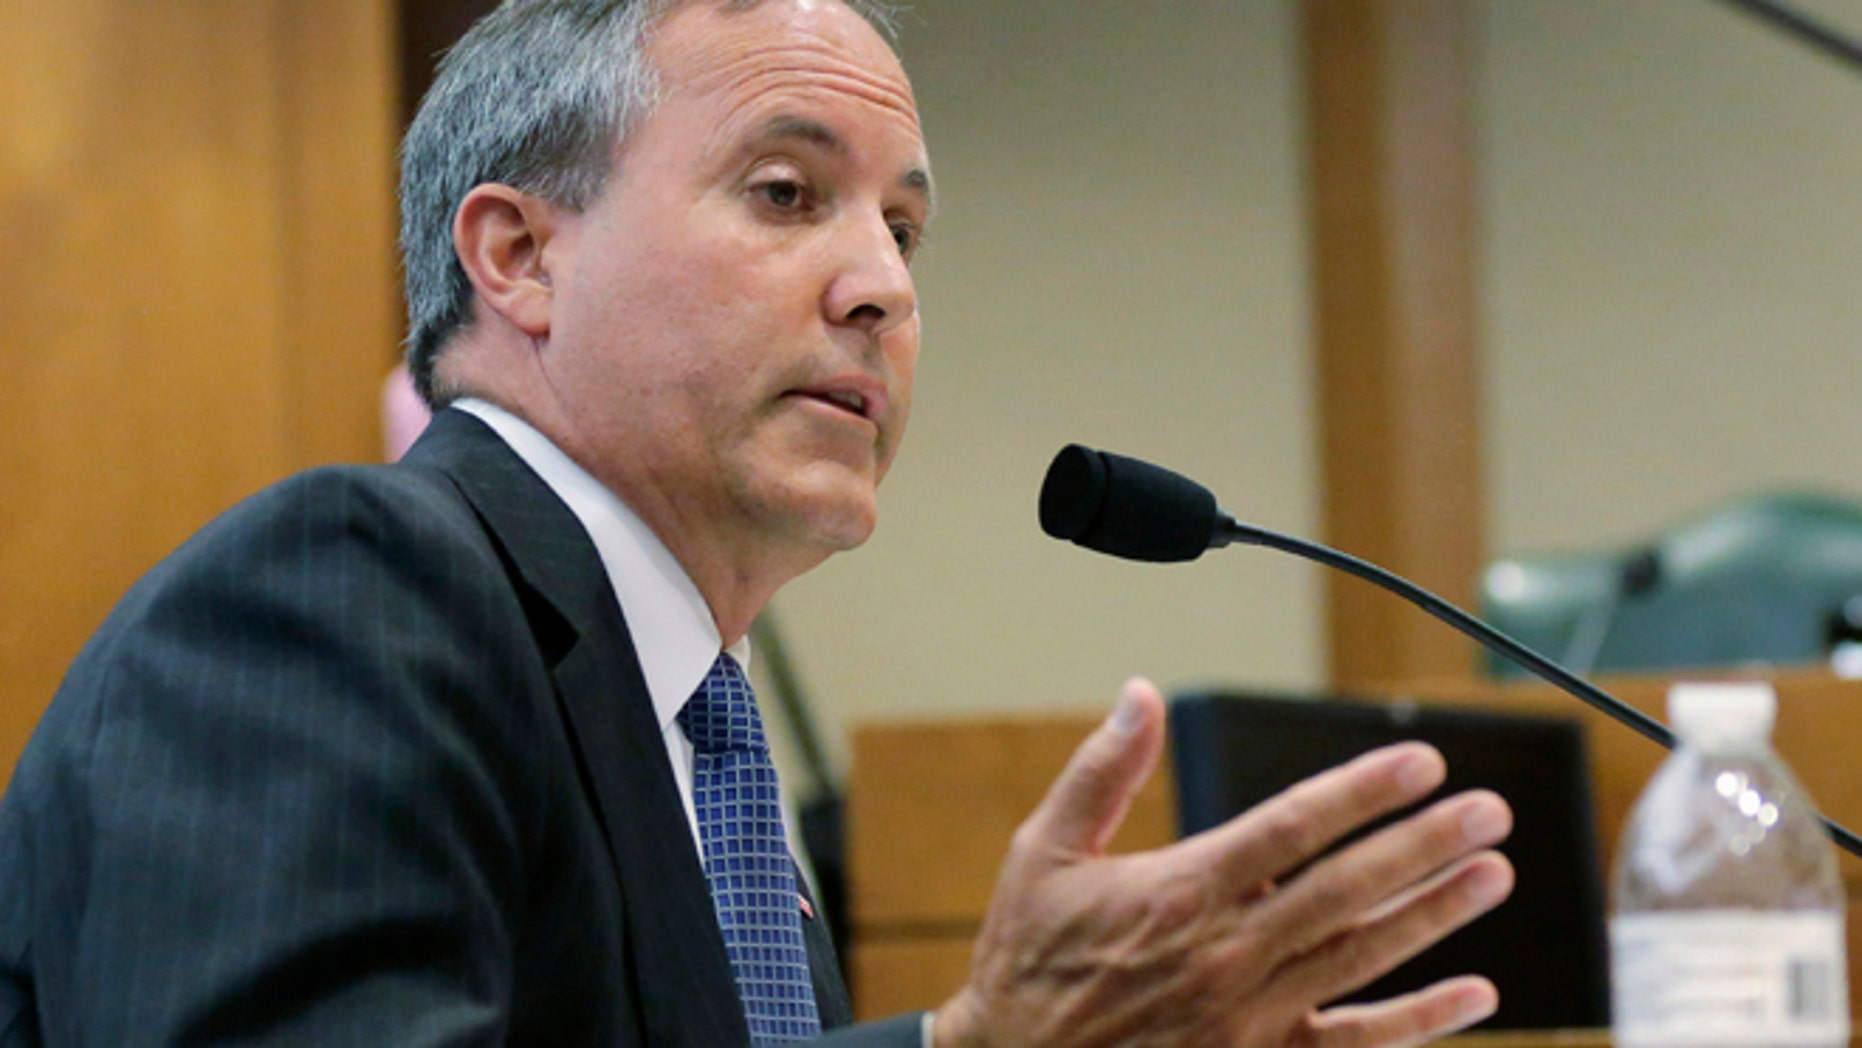 July 29, 2015: Texas Attorney General Ken Paxton speaks during a hearing in Austin, Texas.